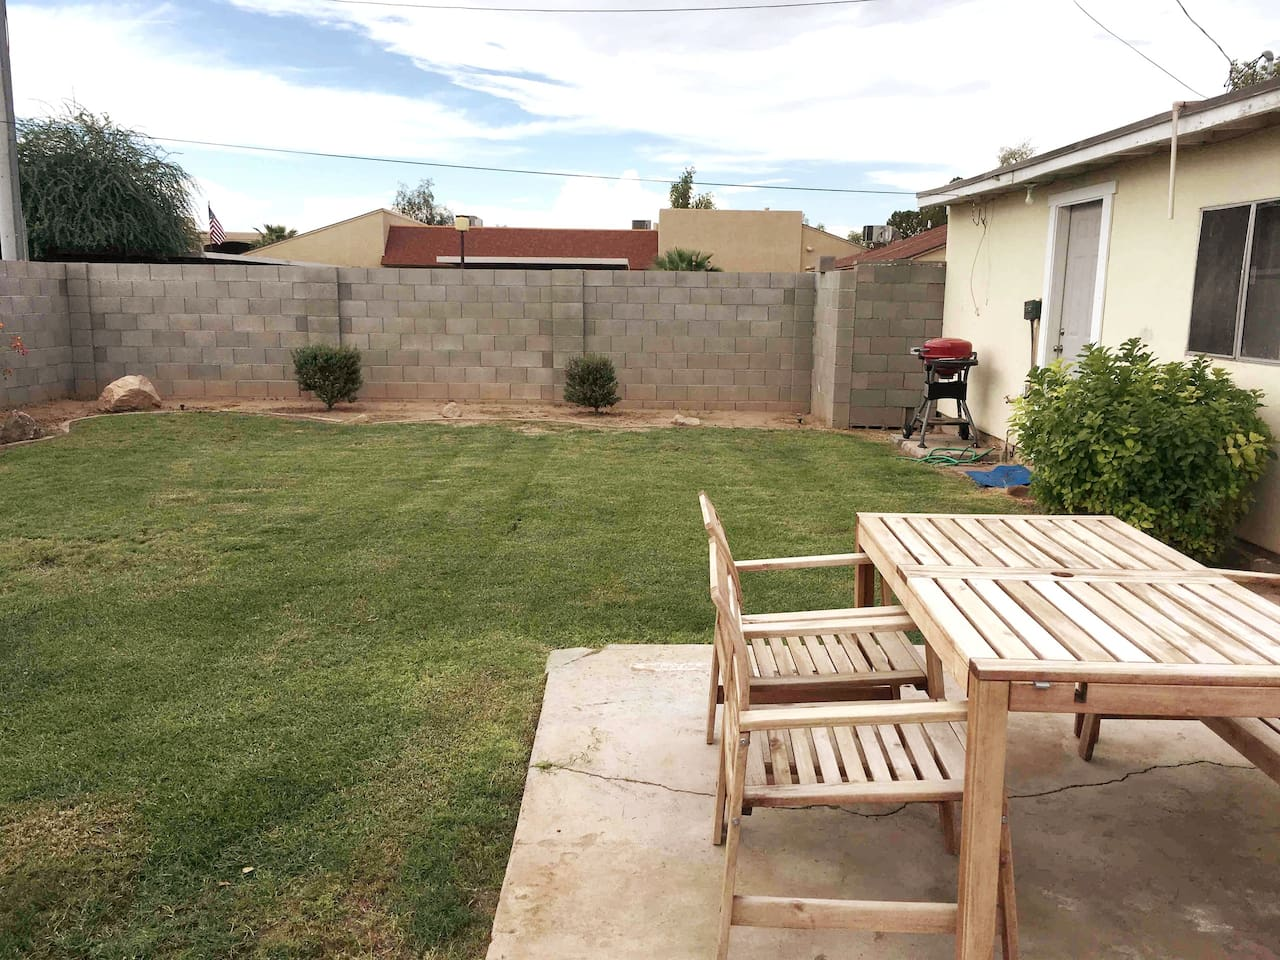 Backyard with lawn, patio table and BBQ grill